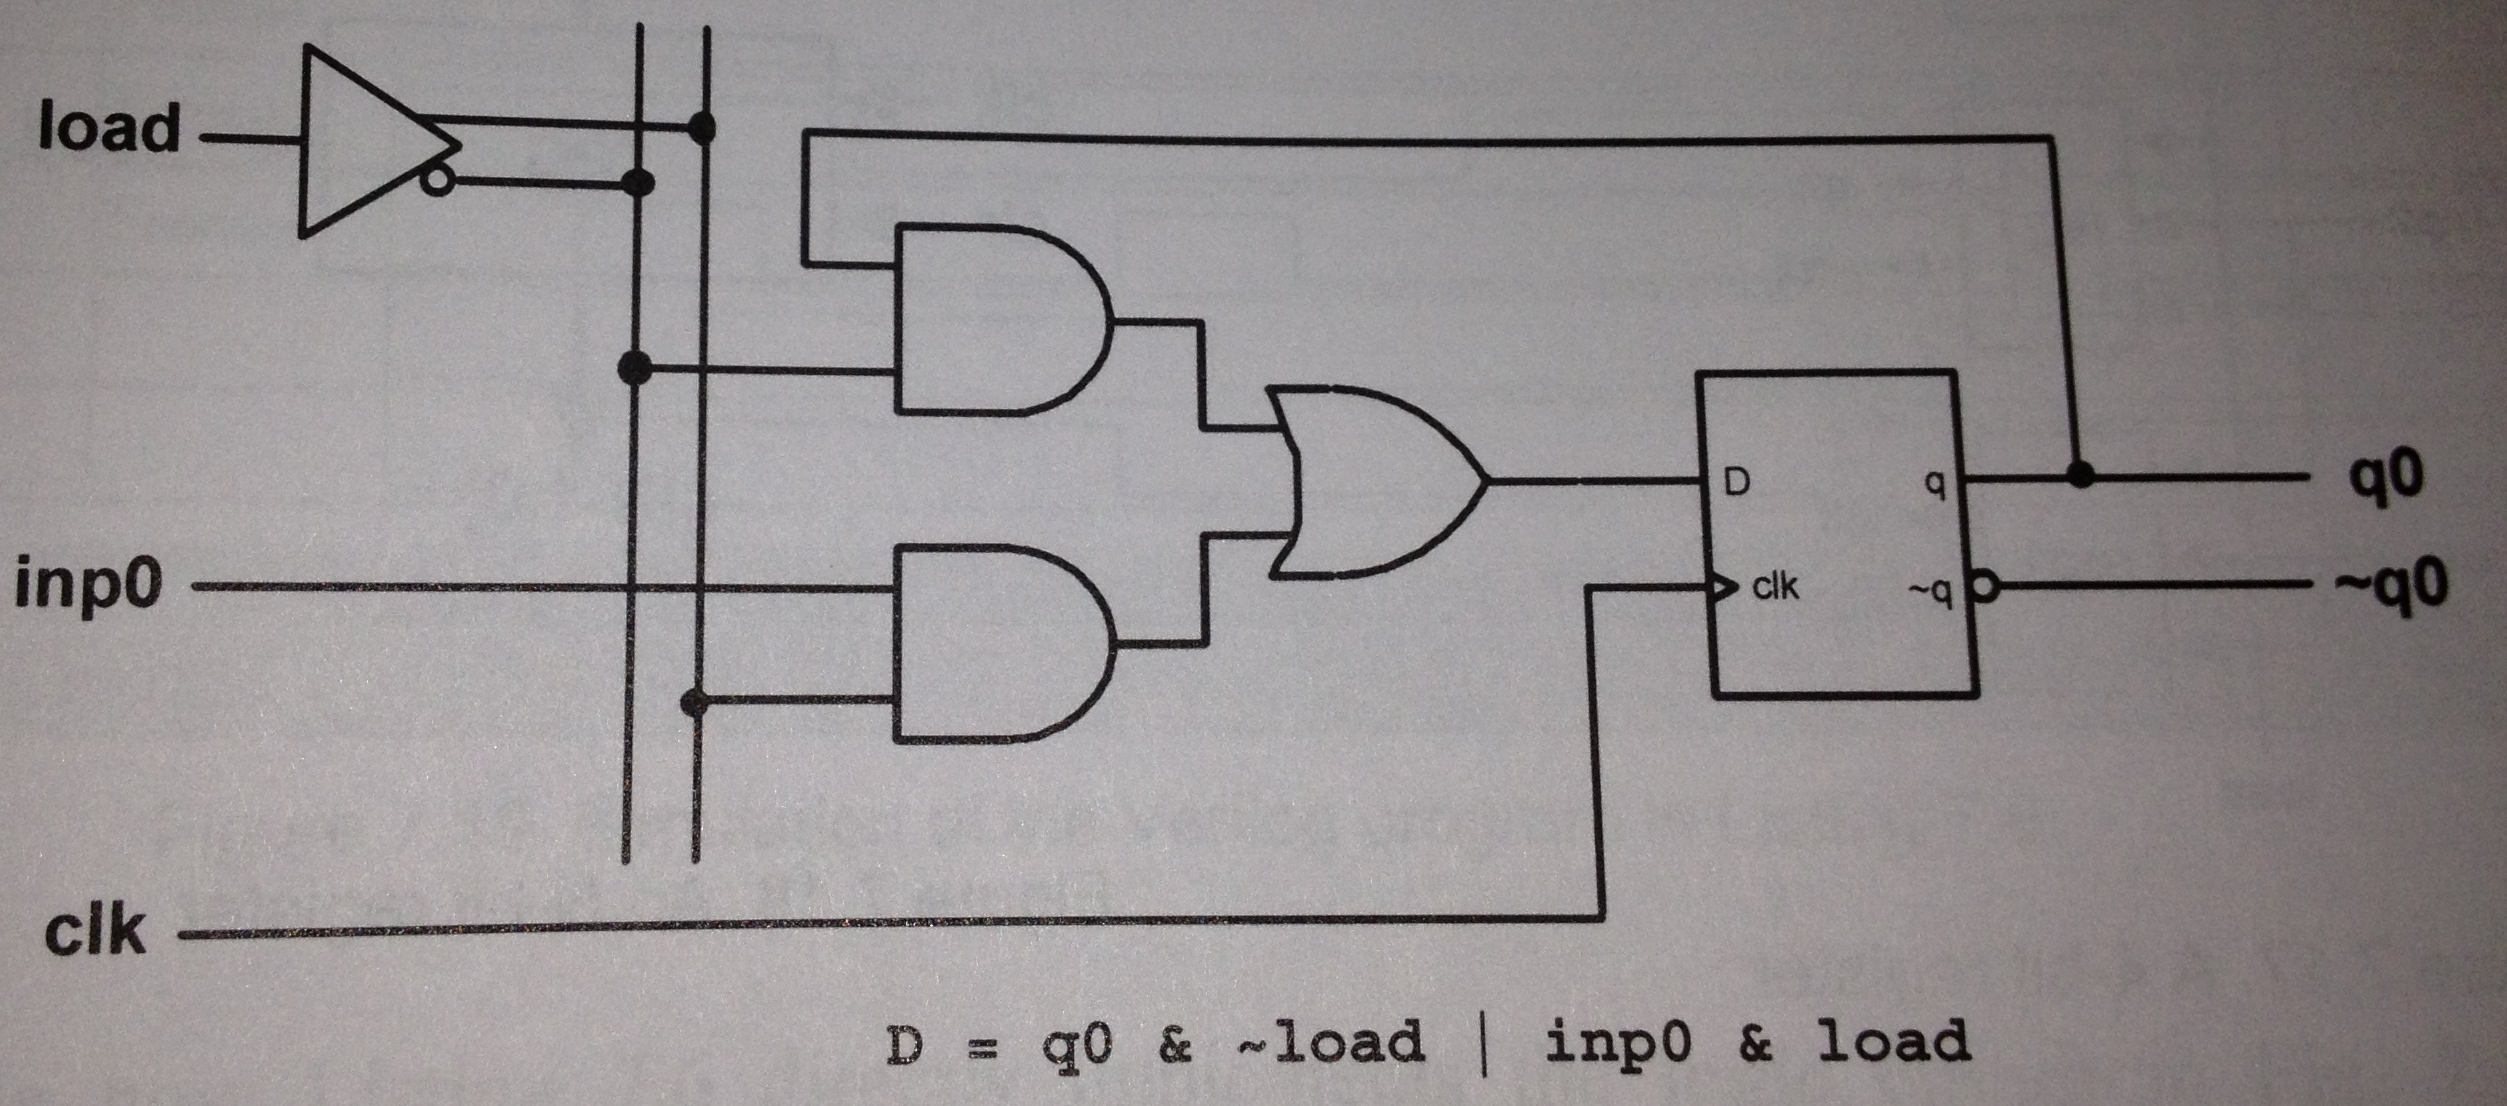 What Does The Circles In The Logic Circuits Mean Page 1